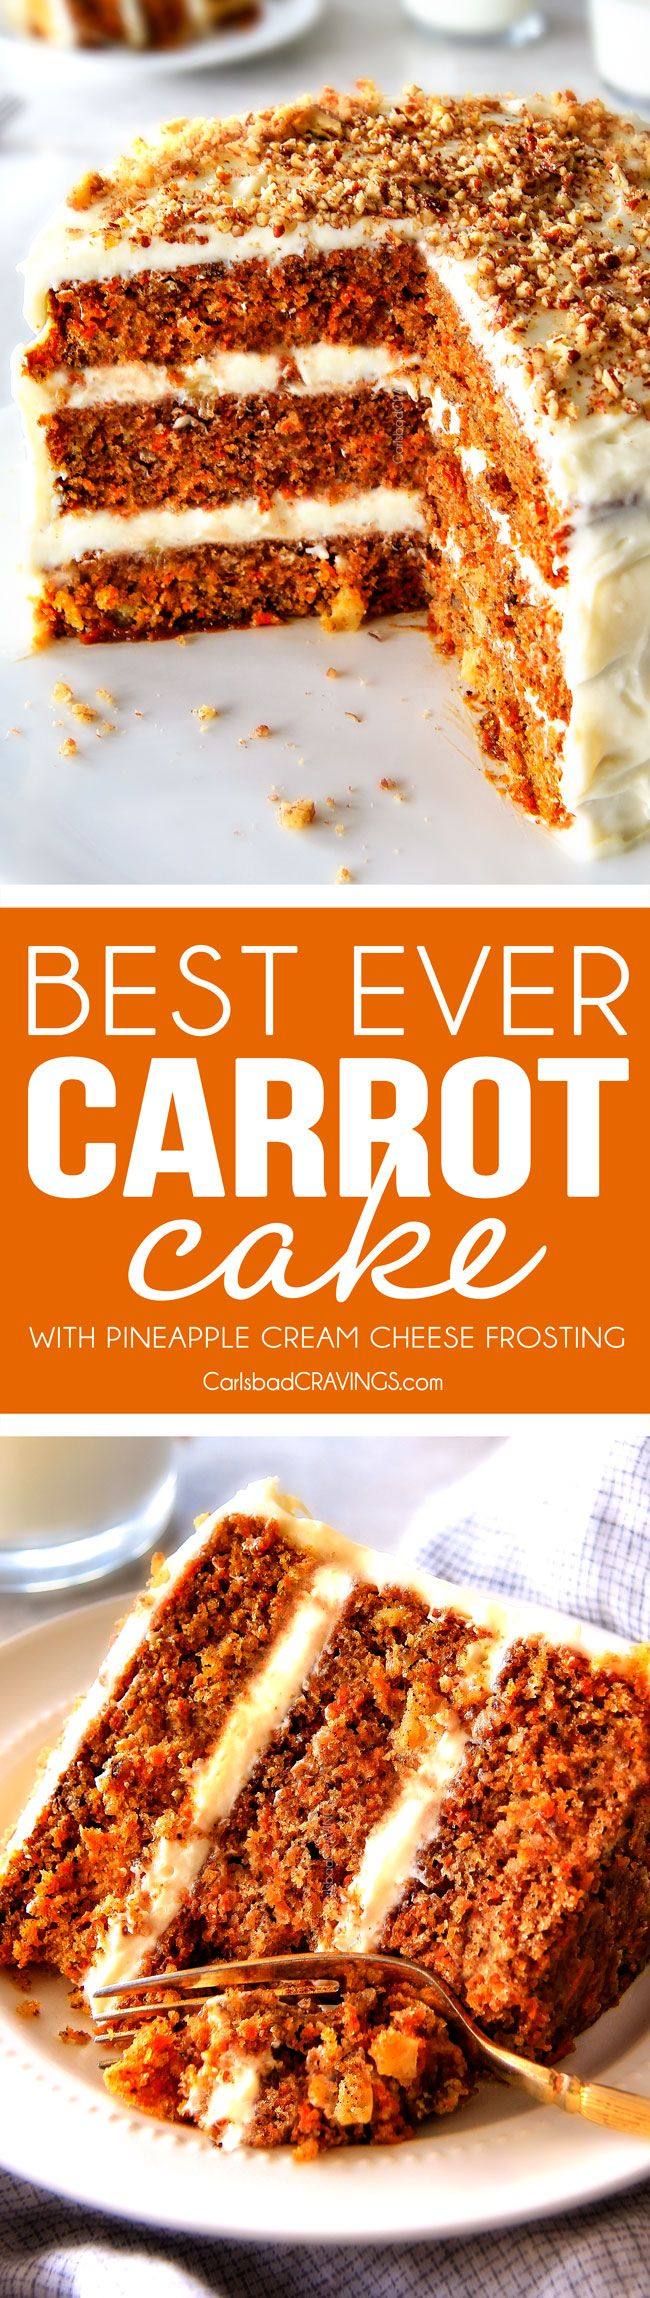 Refrigerated Spiced Carrot Cake Recipe